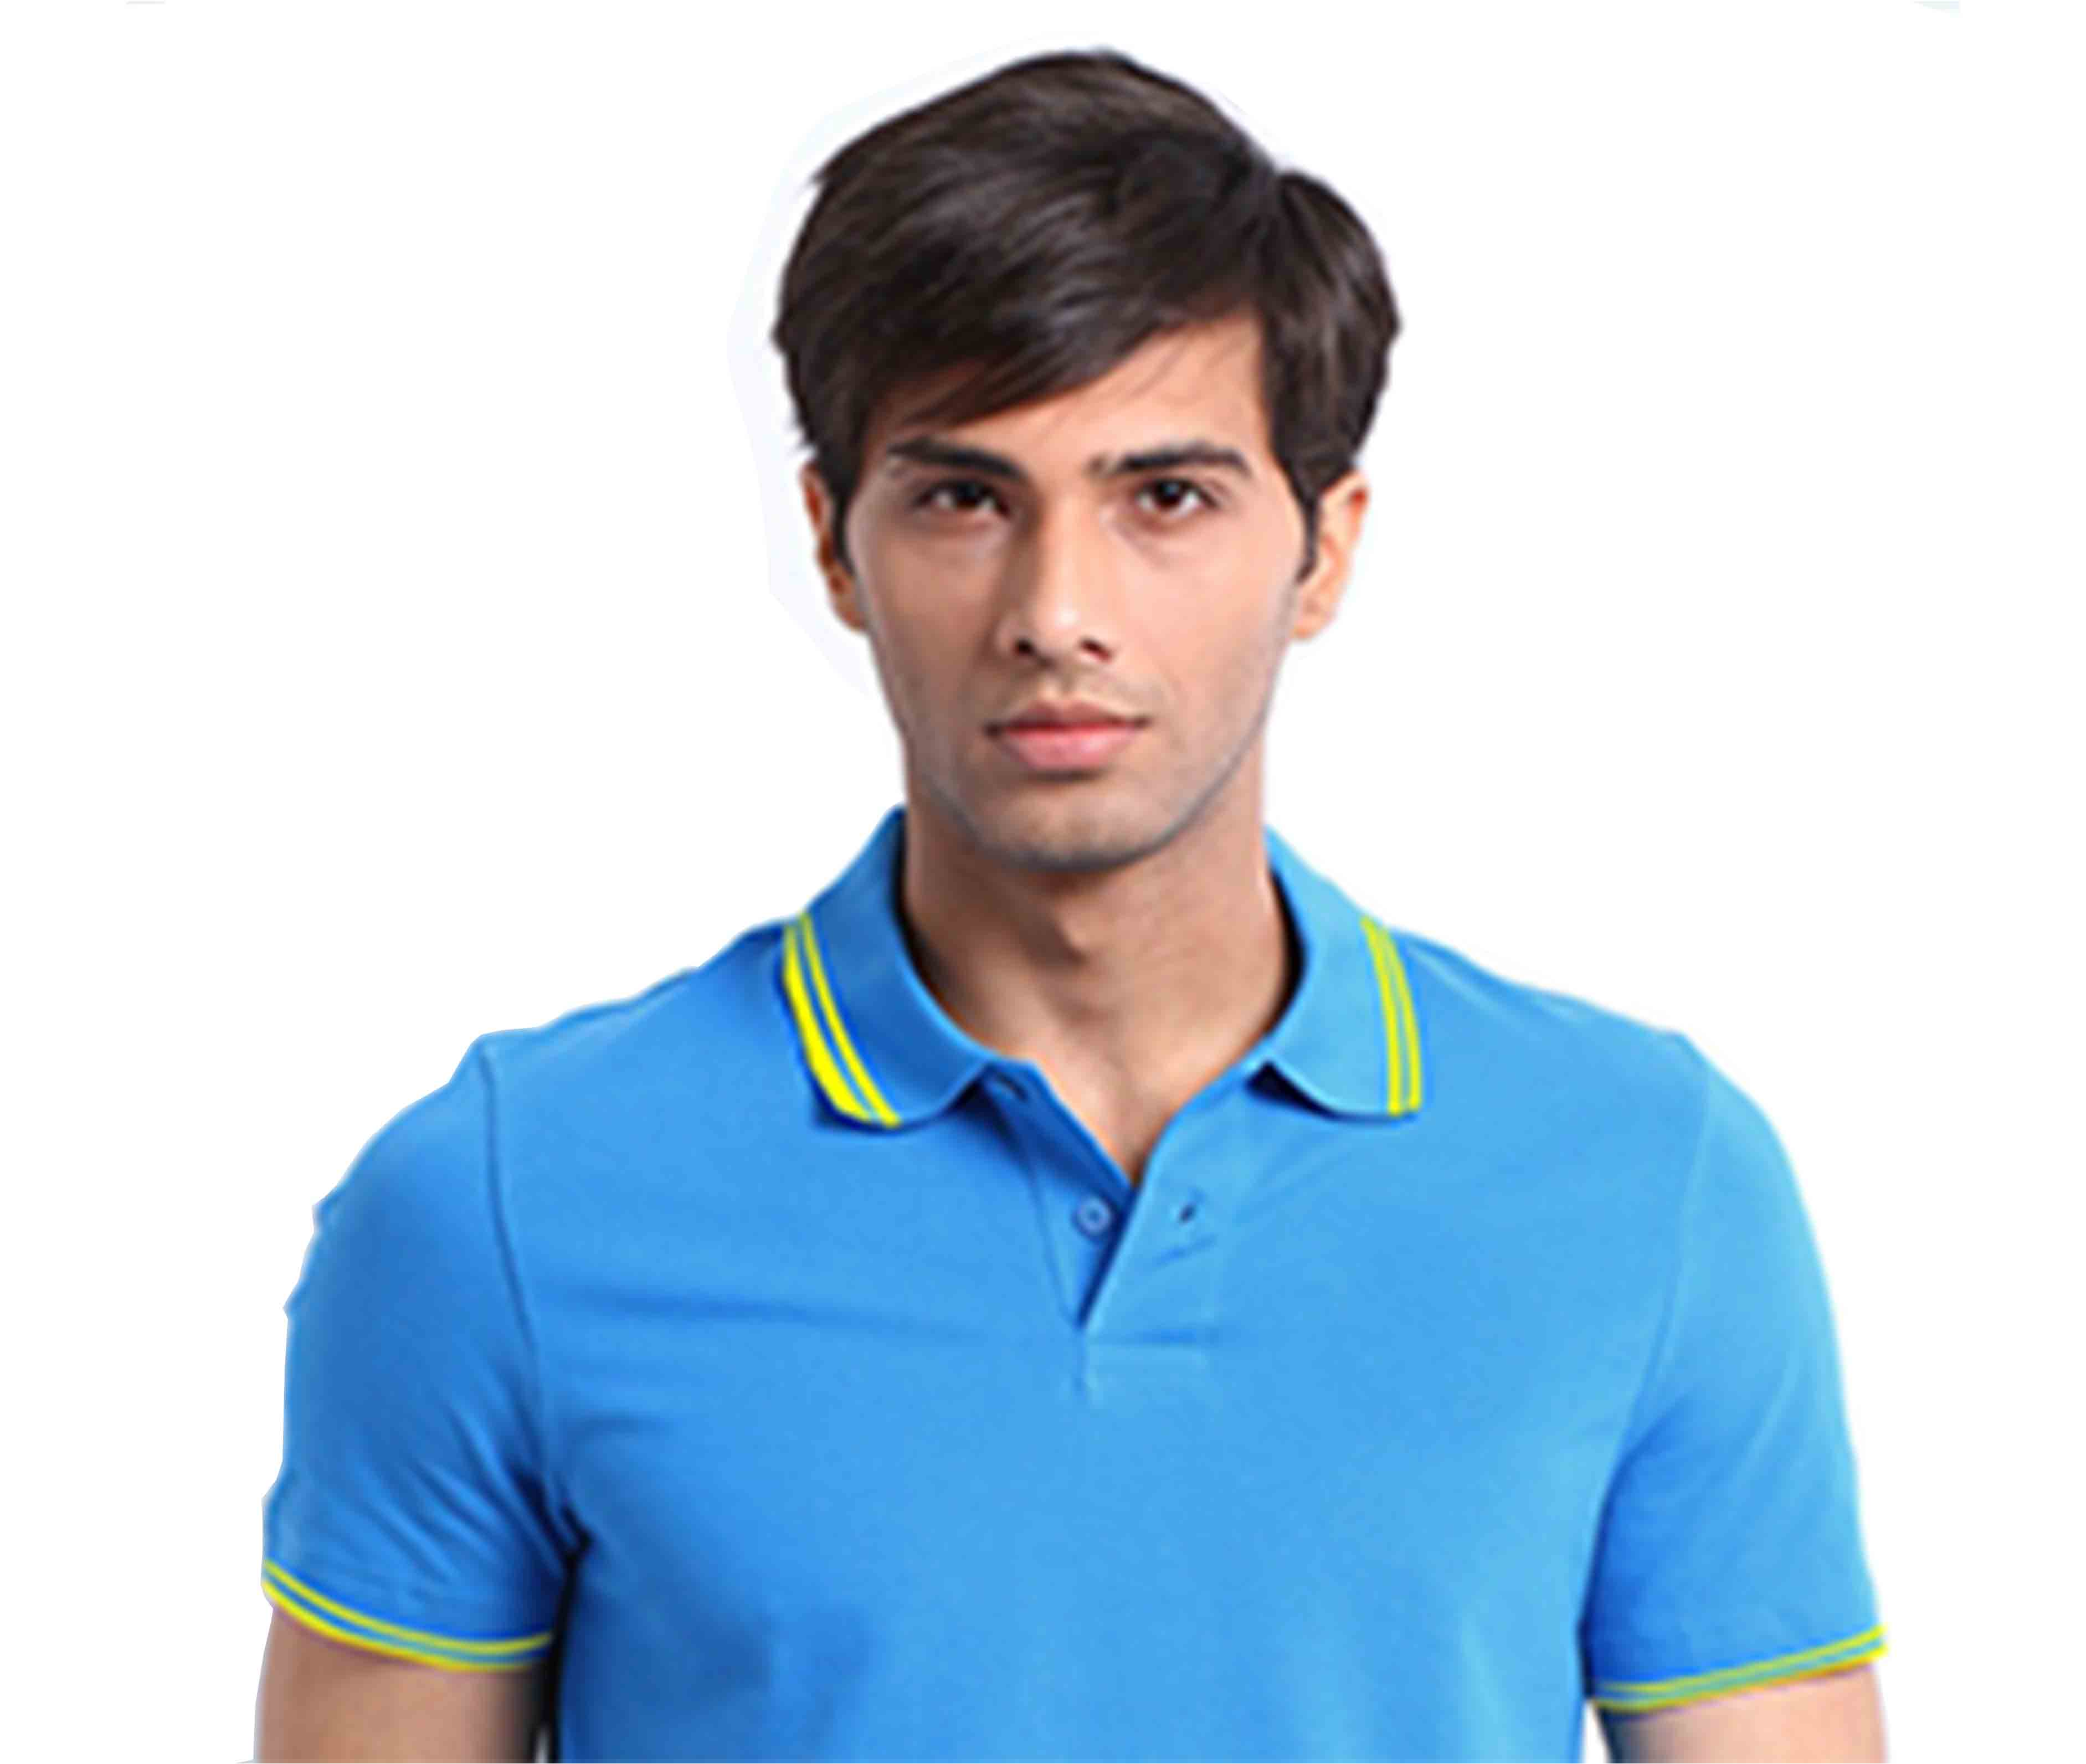 Blue Corner Polo Shirt Color Swatches Edge Engineering And